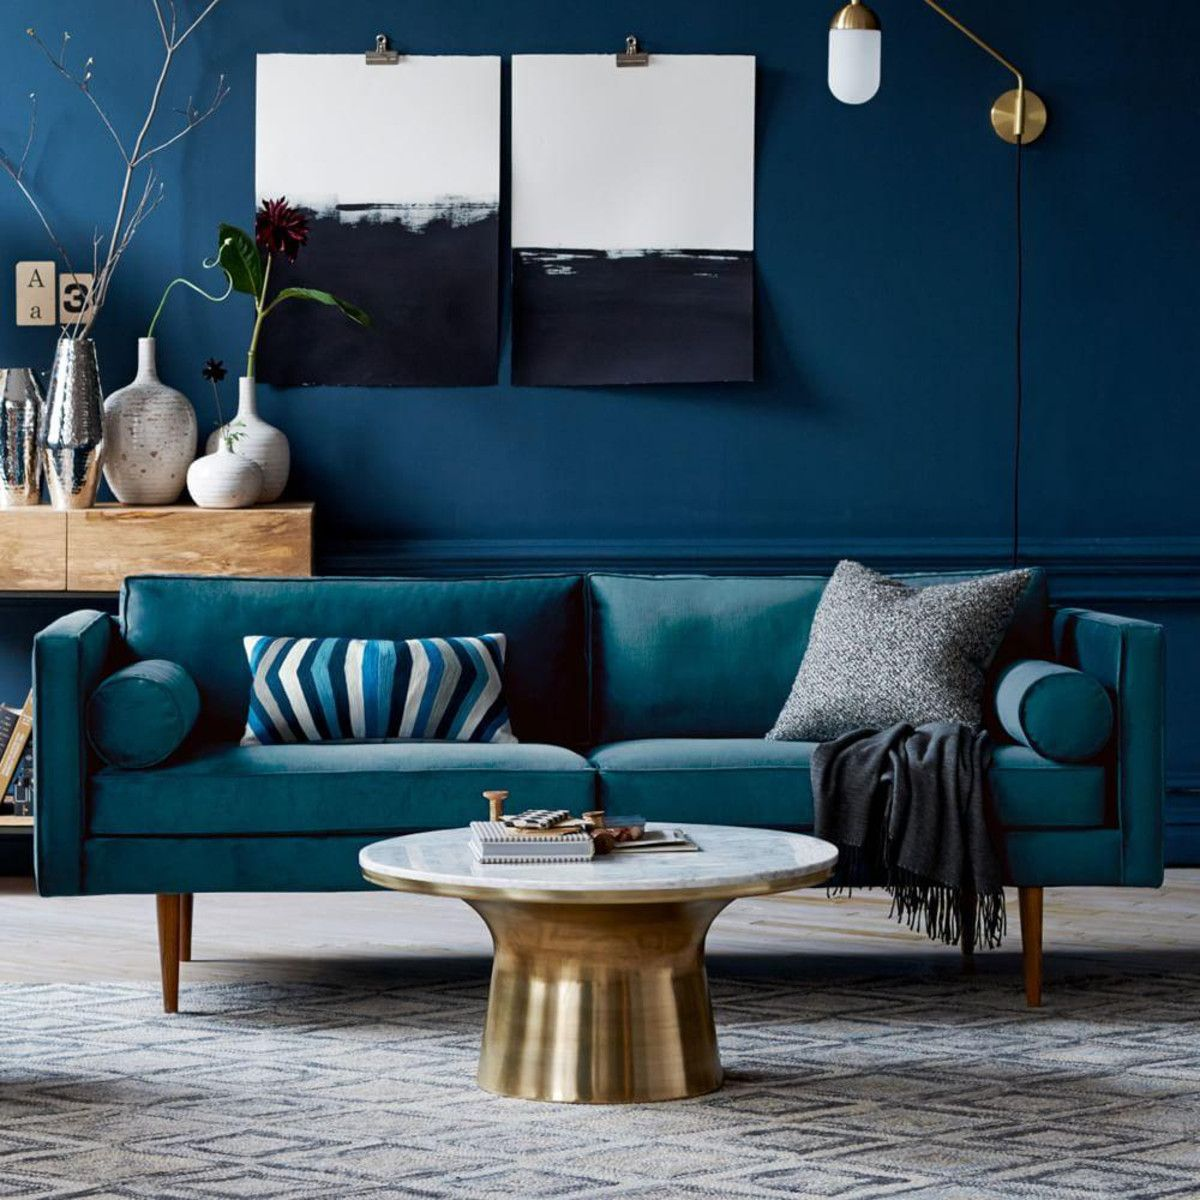 Blue mid-century sofa with coffee table